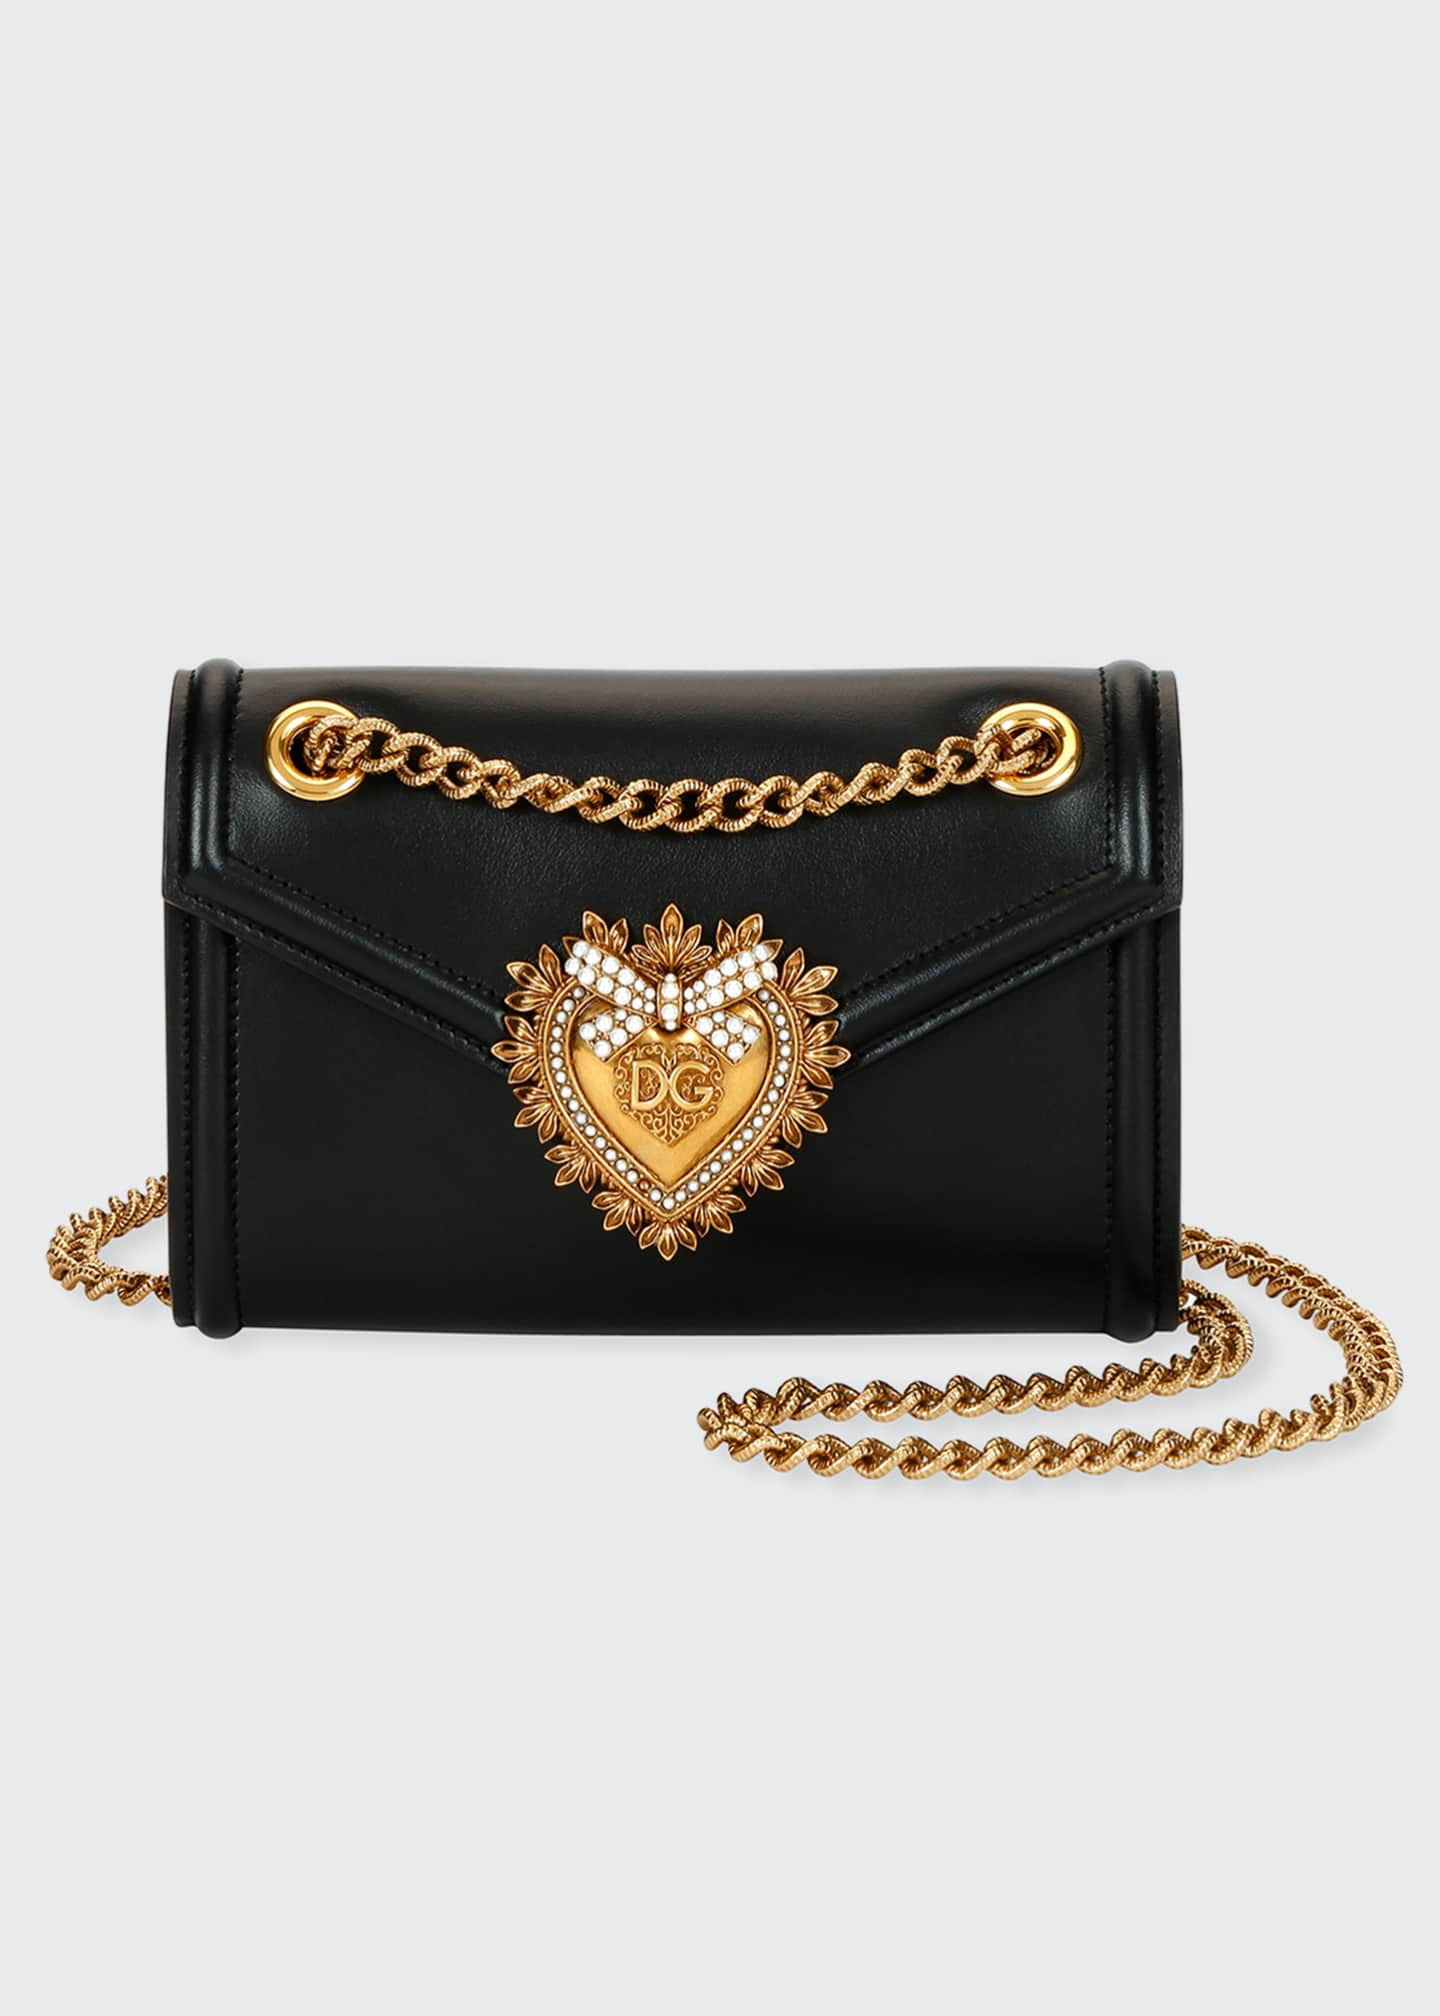 Dolce & Gabbana Devotion Mini Leather Crossbody Bag